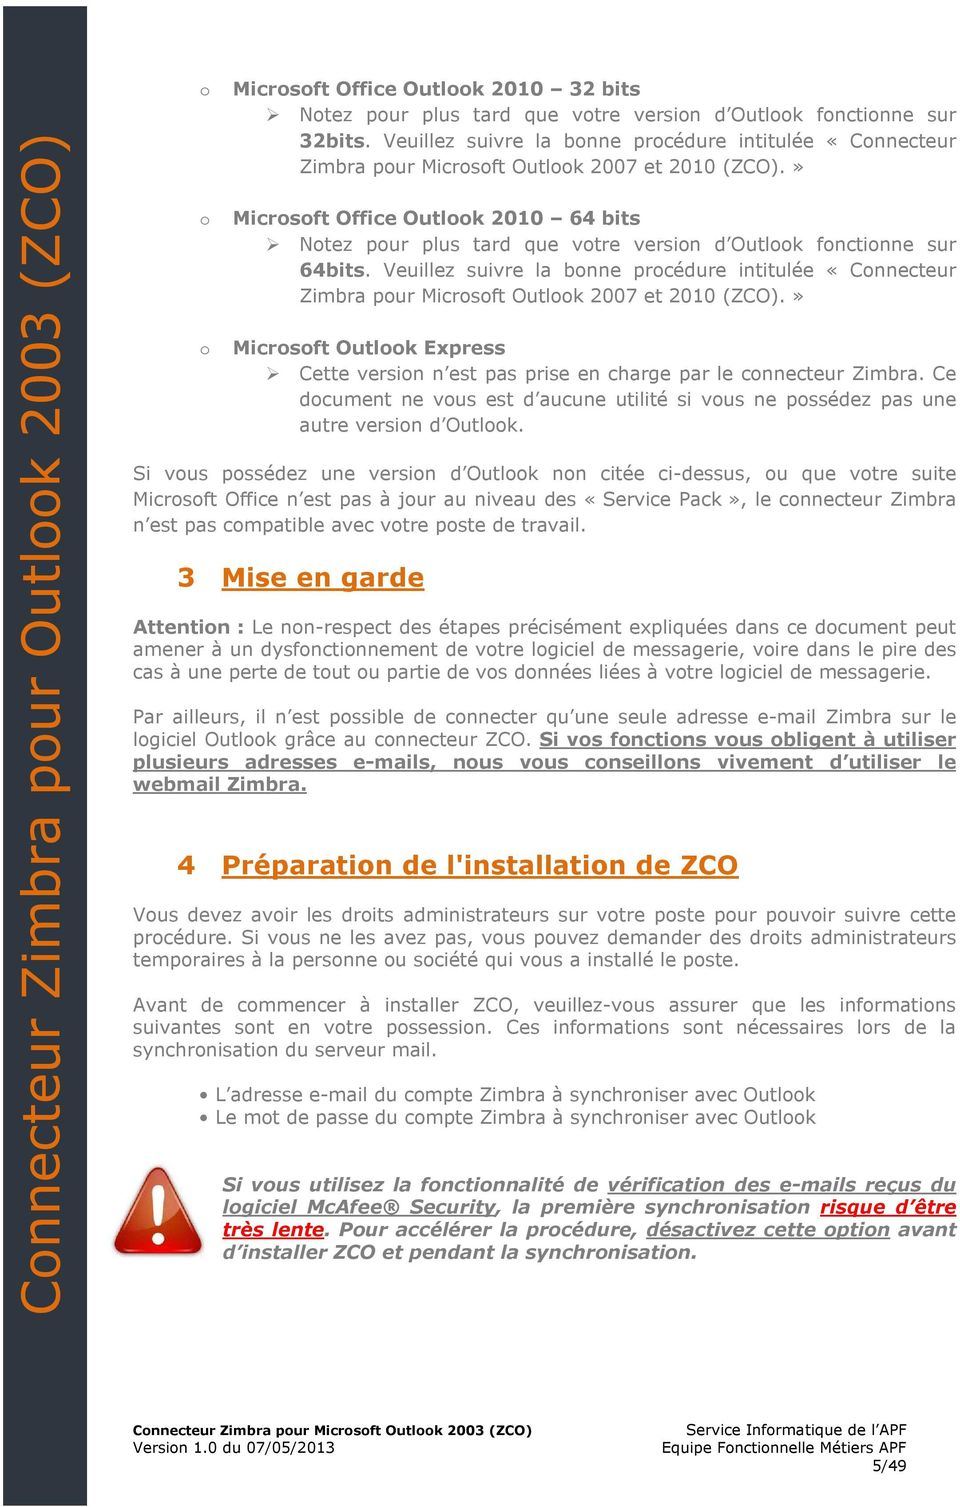 » Microsoft Office Outlook 2010 64 bits Notez pour plus tard que votre version d Outlook fonctionne sur 64bits.